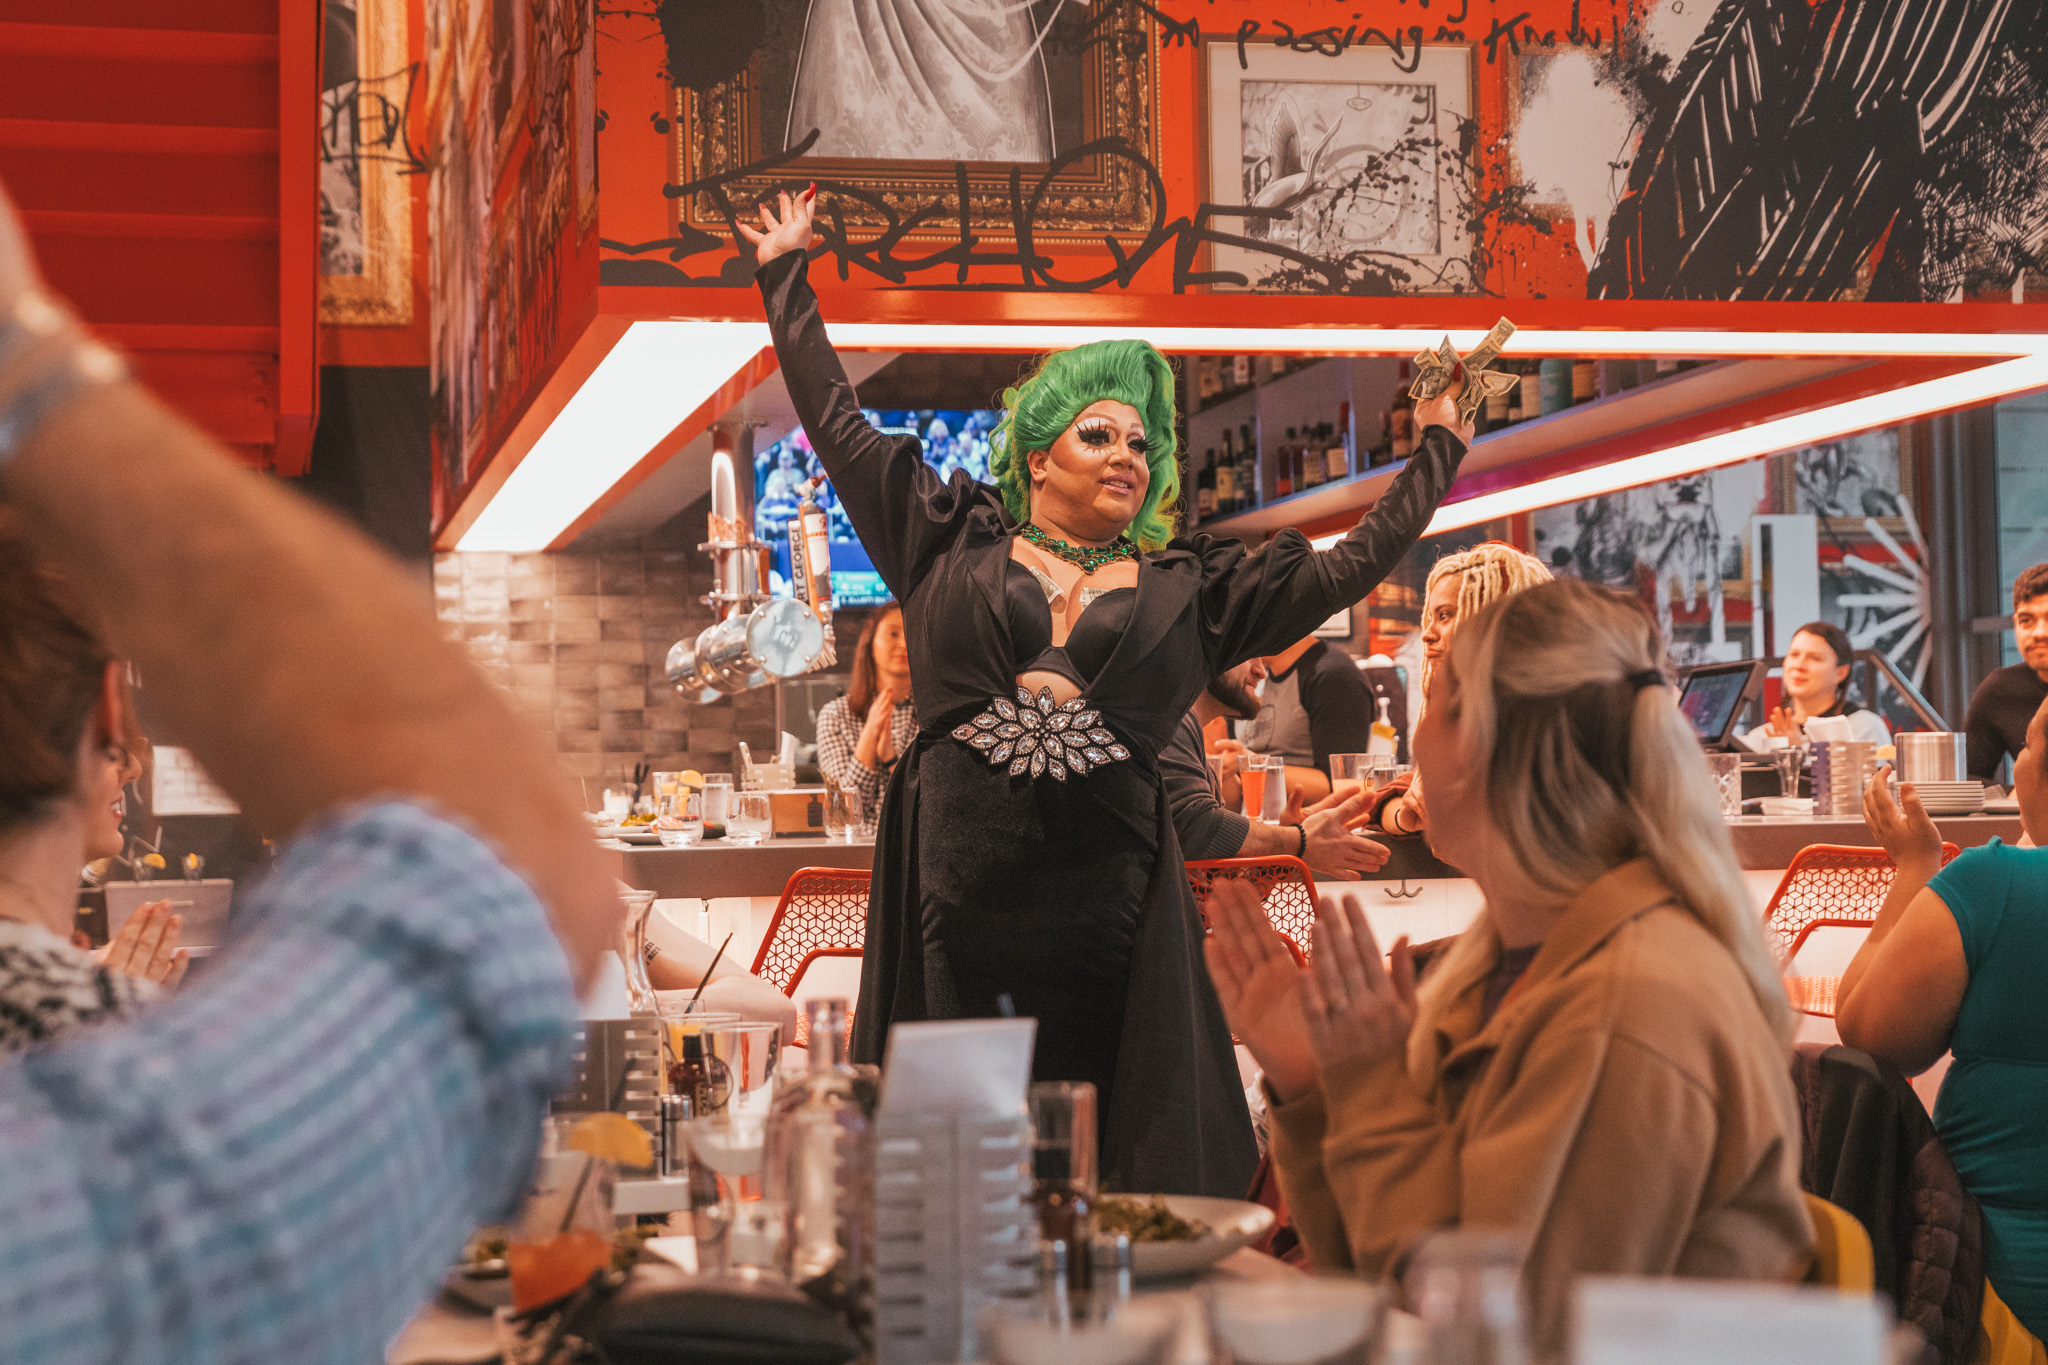 Recover Drag Brunch // Checking In: The Radisson Red in Downtown Portland, Oregon #readysetjetset #pdx #portland #blogpost #travelguide